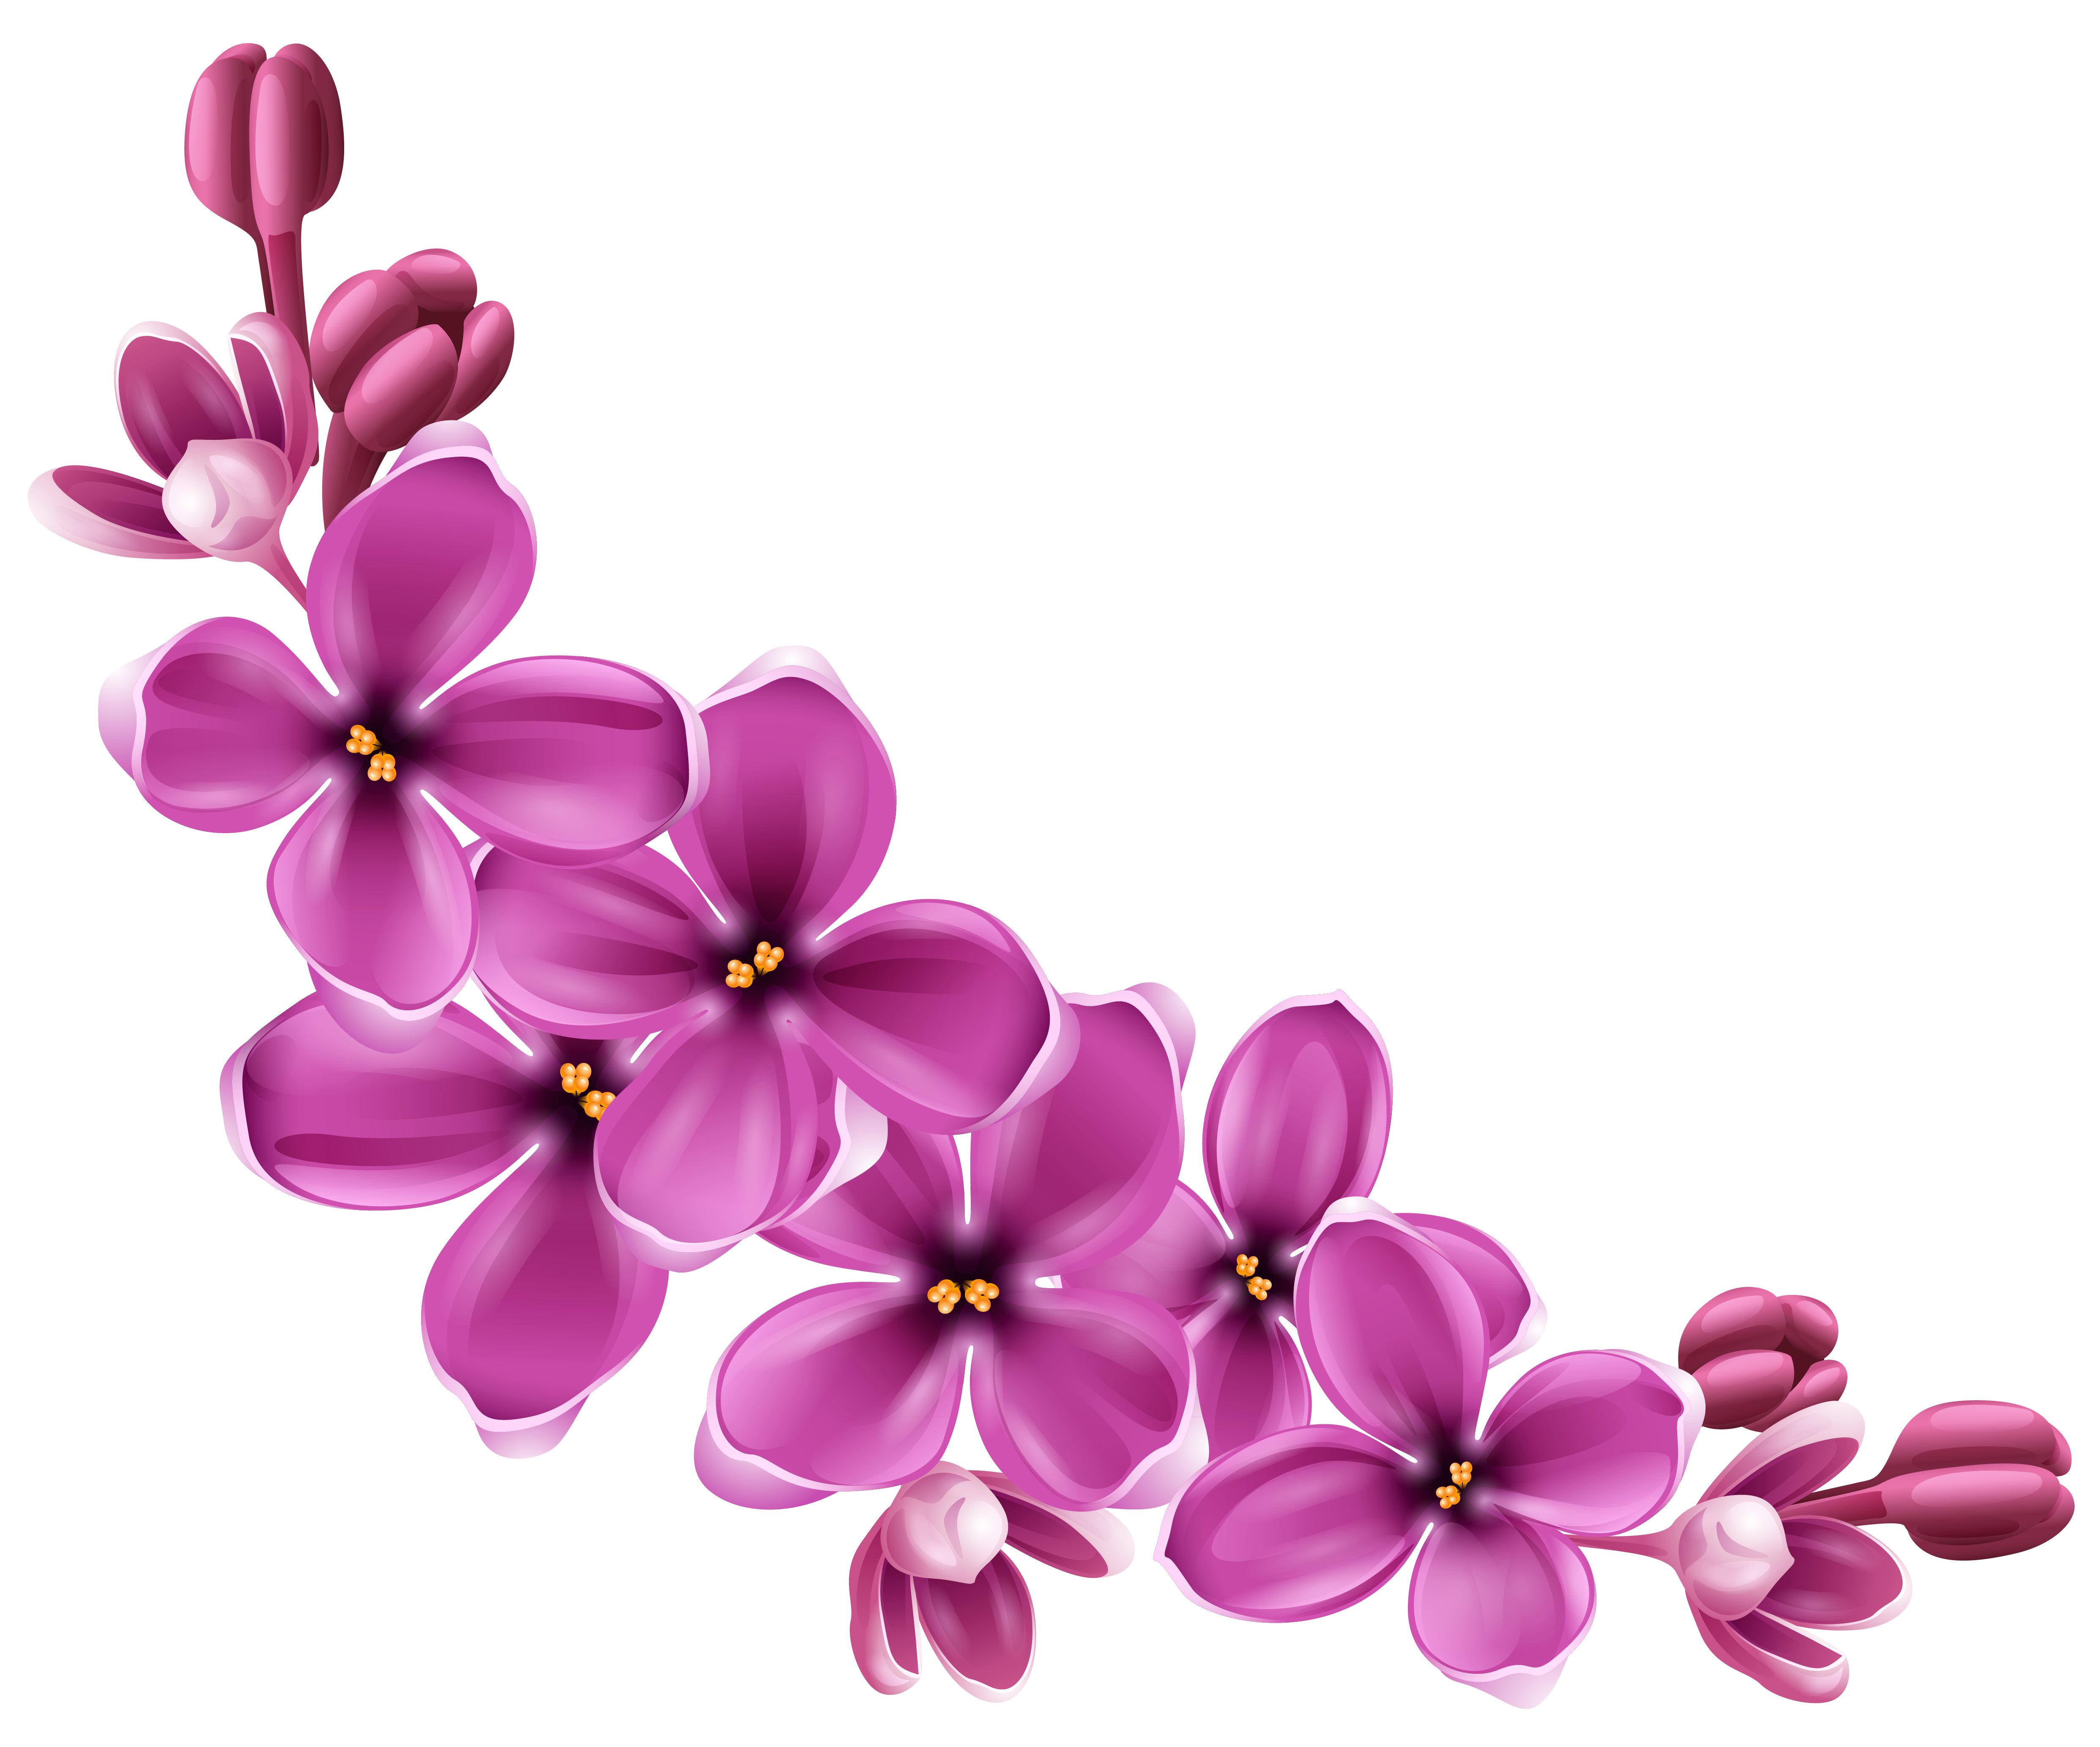 Spring flowers png pictures. Floral clipart transparent background